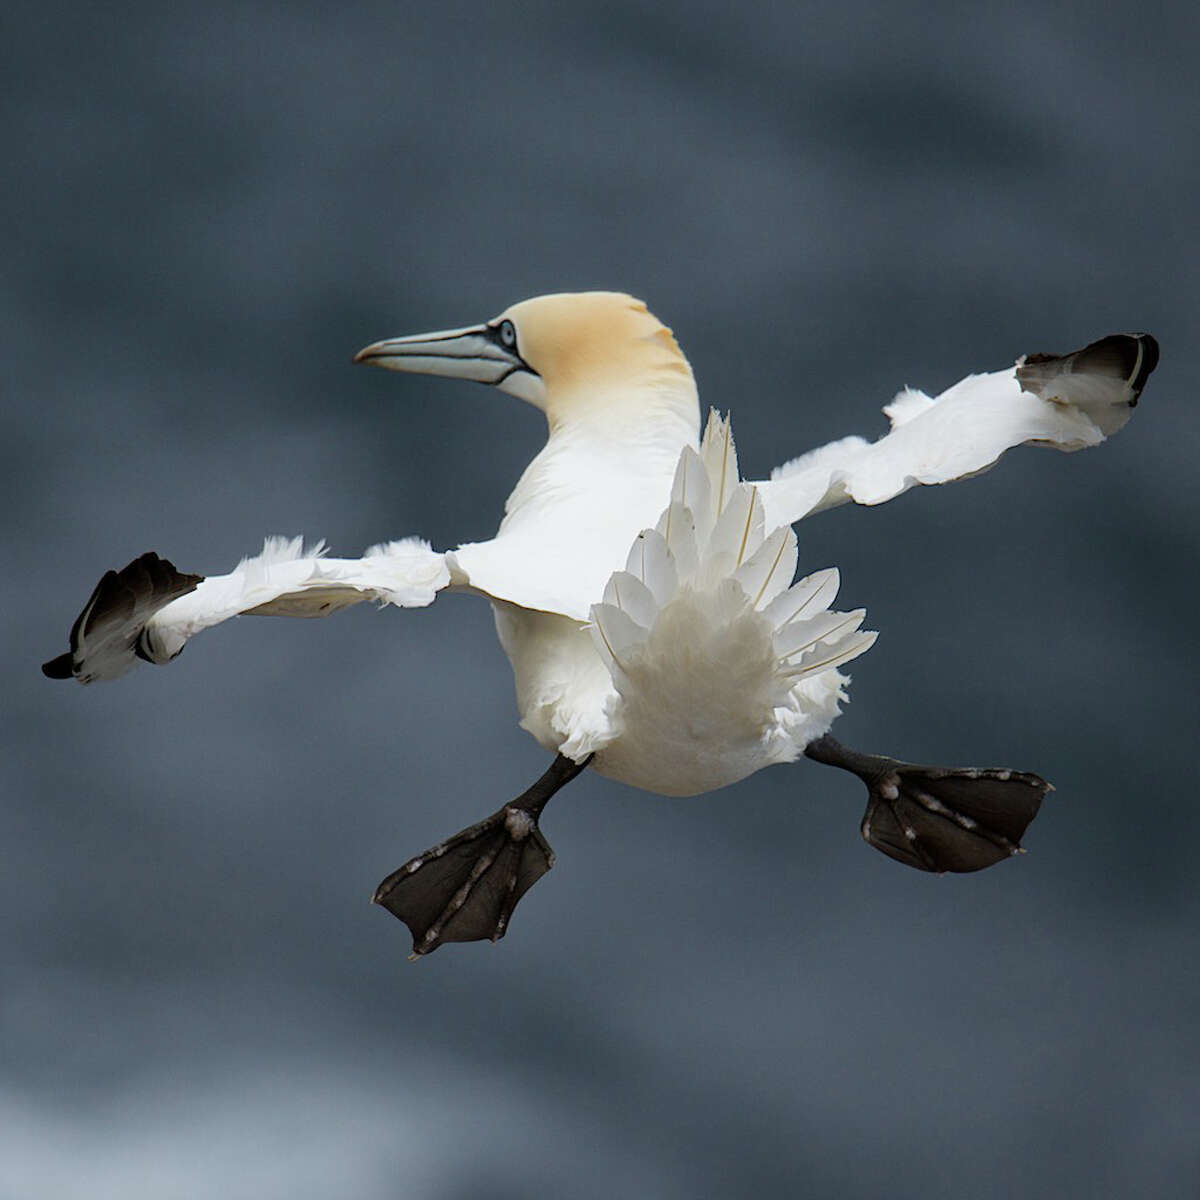 """""""Look Ma, I can fly!"""" Highly Commended - Charlie Davidson"""